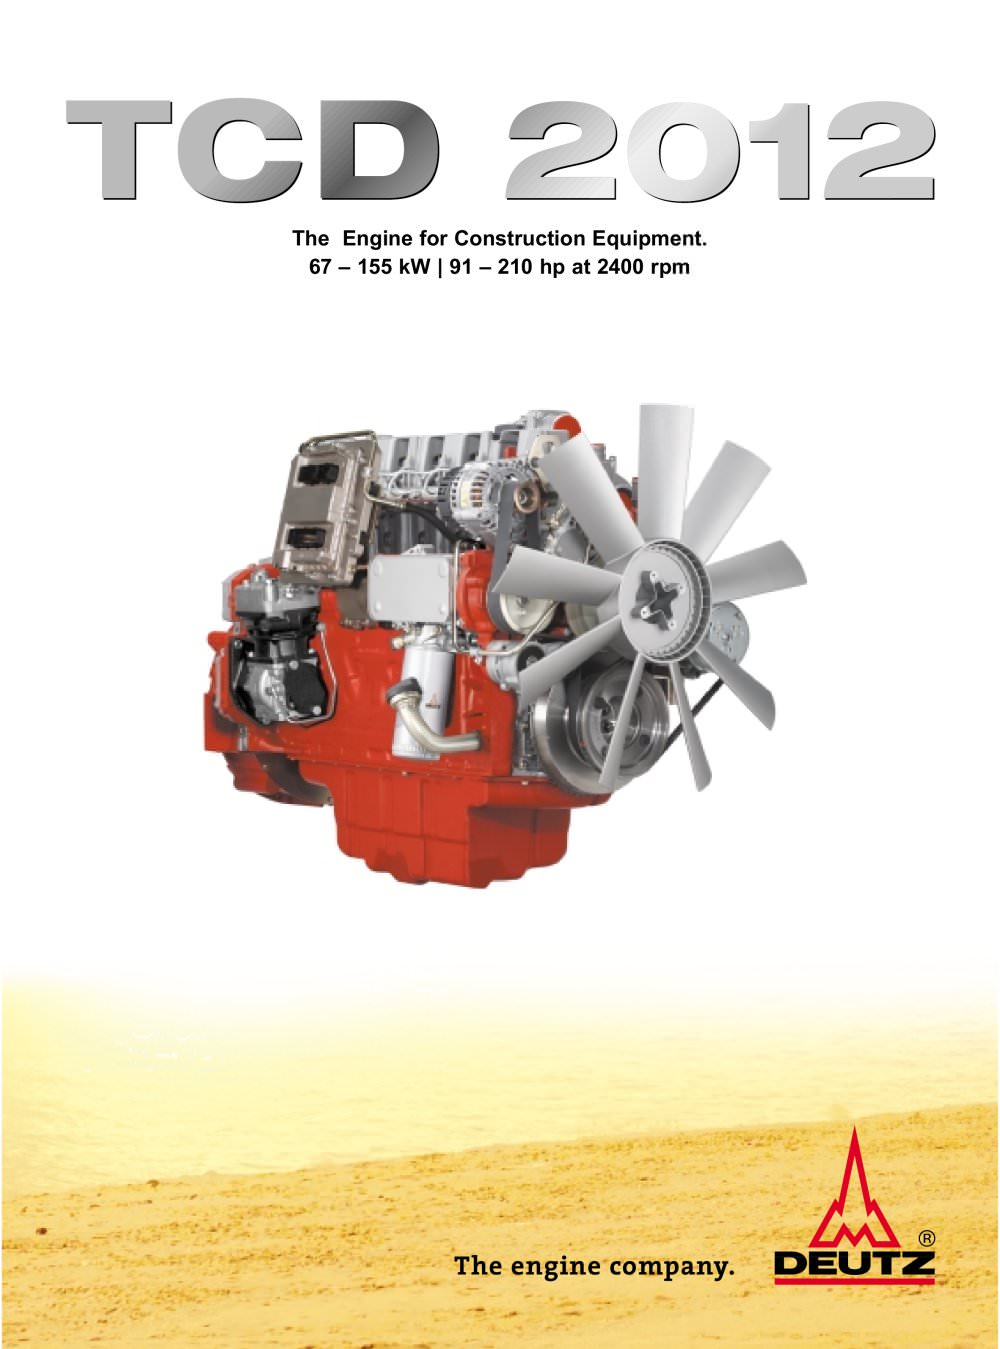 TCD 2012 The construction equipment engine - 1 / 4 Pages